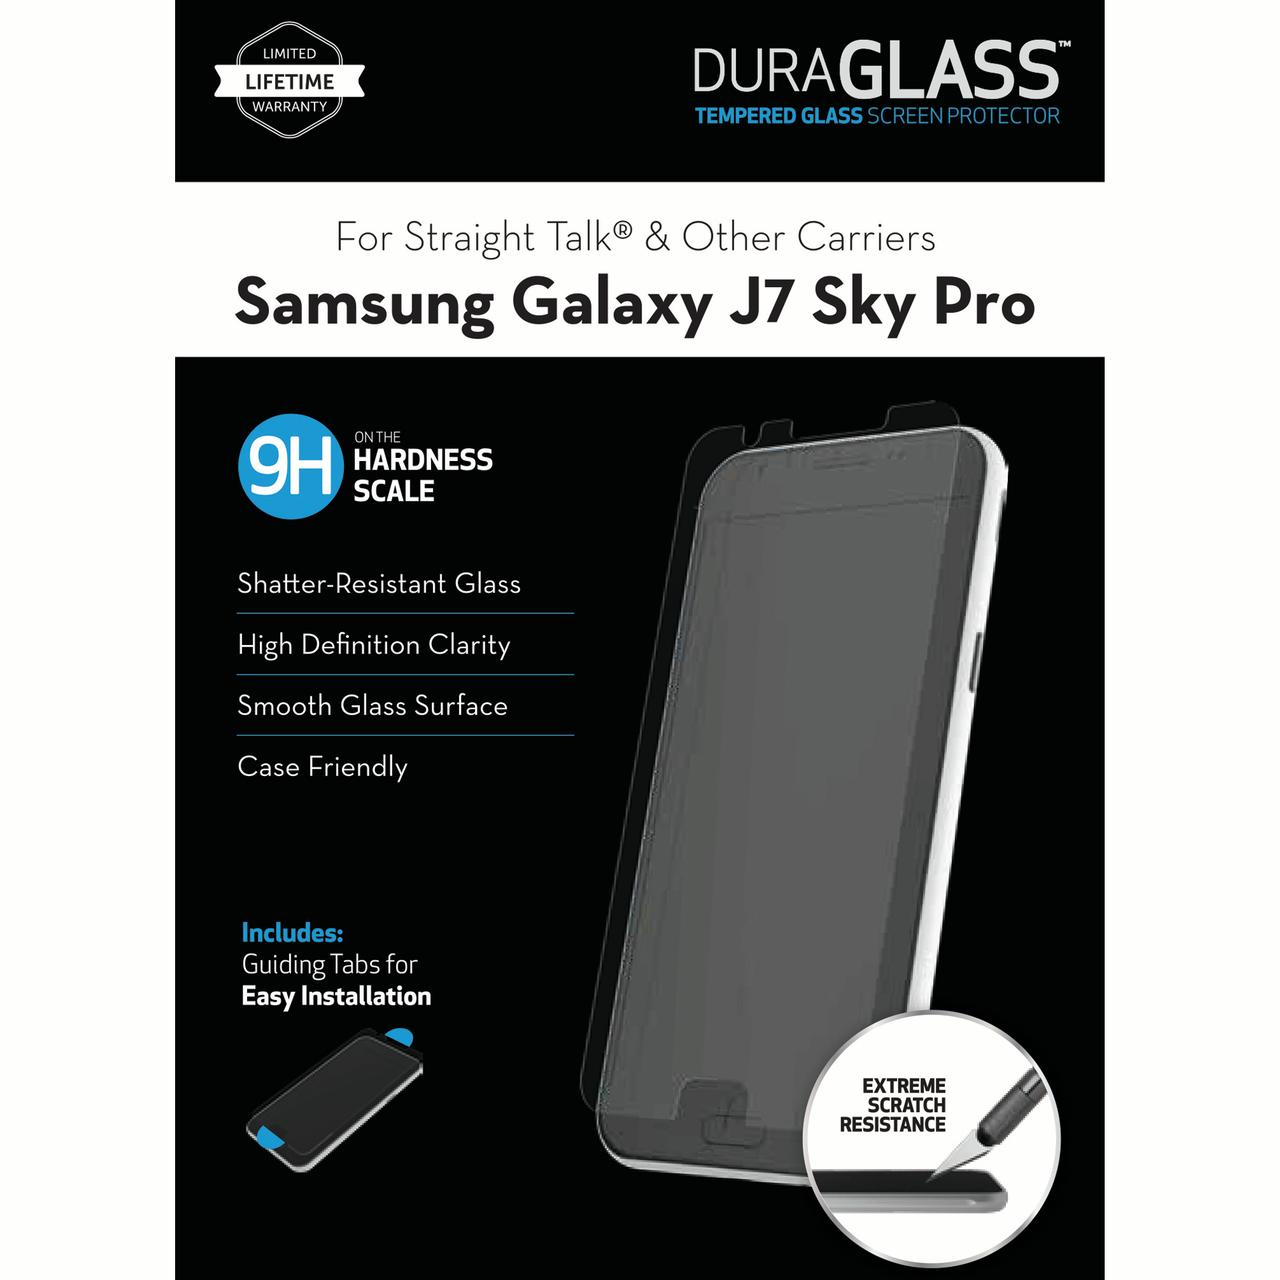 WriteRight DuraGlass Tempered Glass Screen Protector for Samsung Galaxy J7 Sky Pro (Also fits S727VL, J7 (2017))